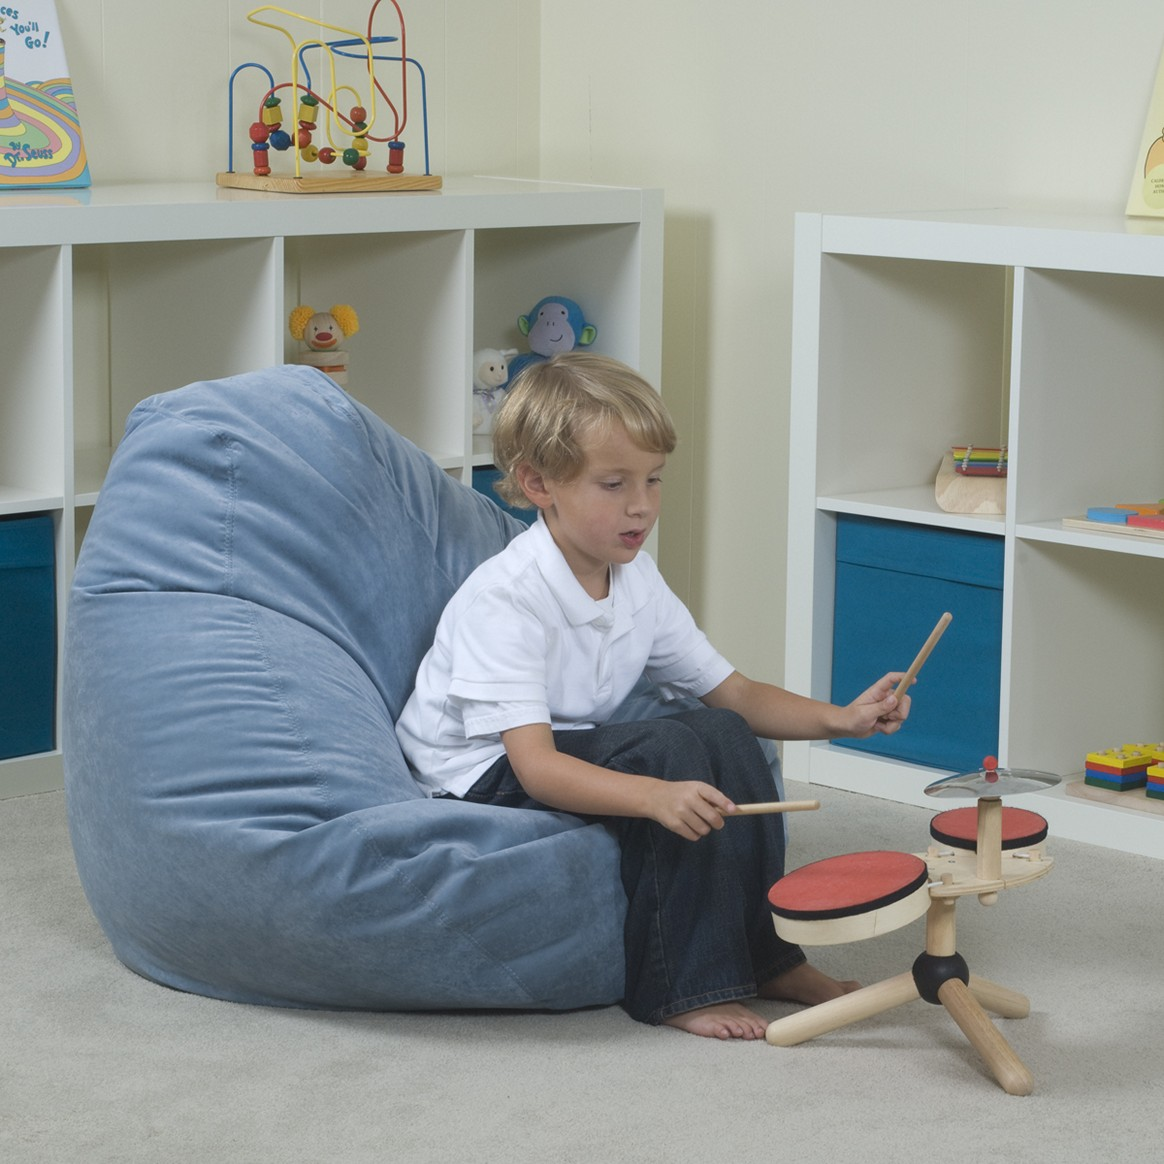 Bean Bag Chair For Toddler Solid Wood Ladder Back Chairs How To Choose In Smart Ways Actually It Is Good Idea Consider That You Are Able Has Nice Looking Appearance And Expensive Price If Seeking